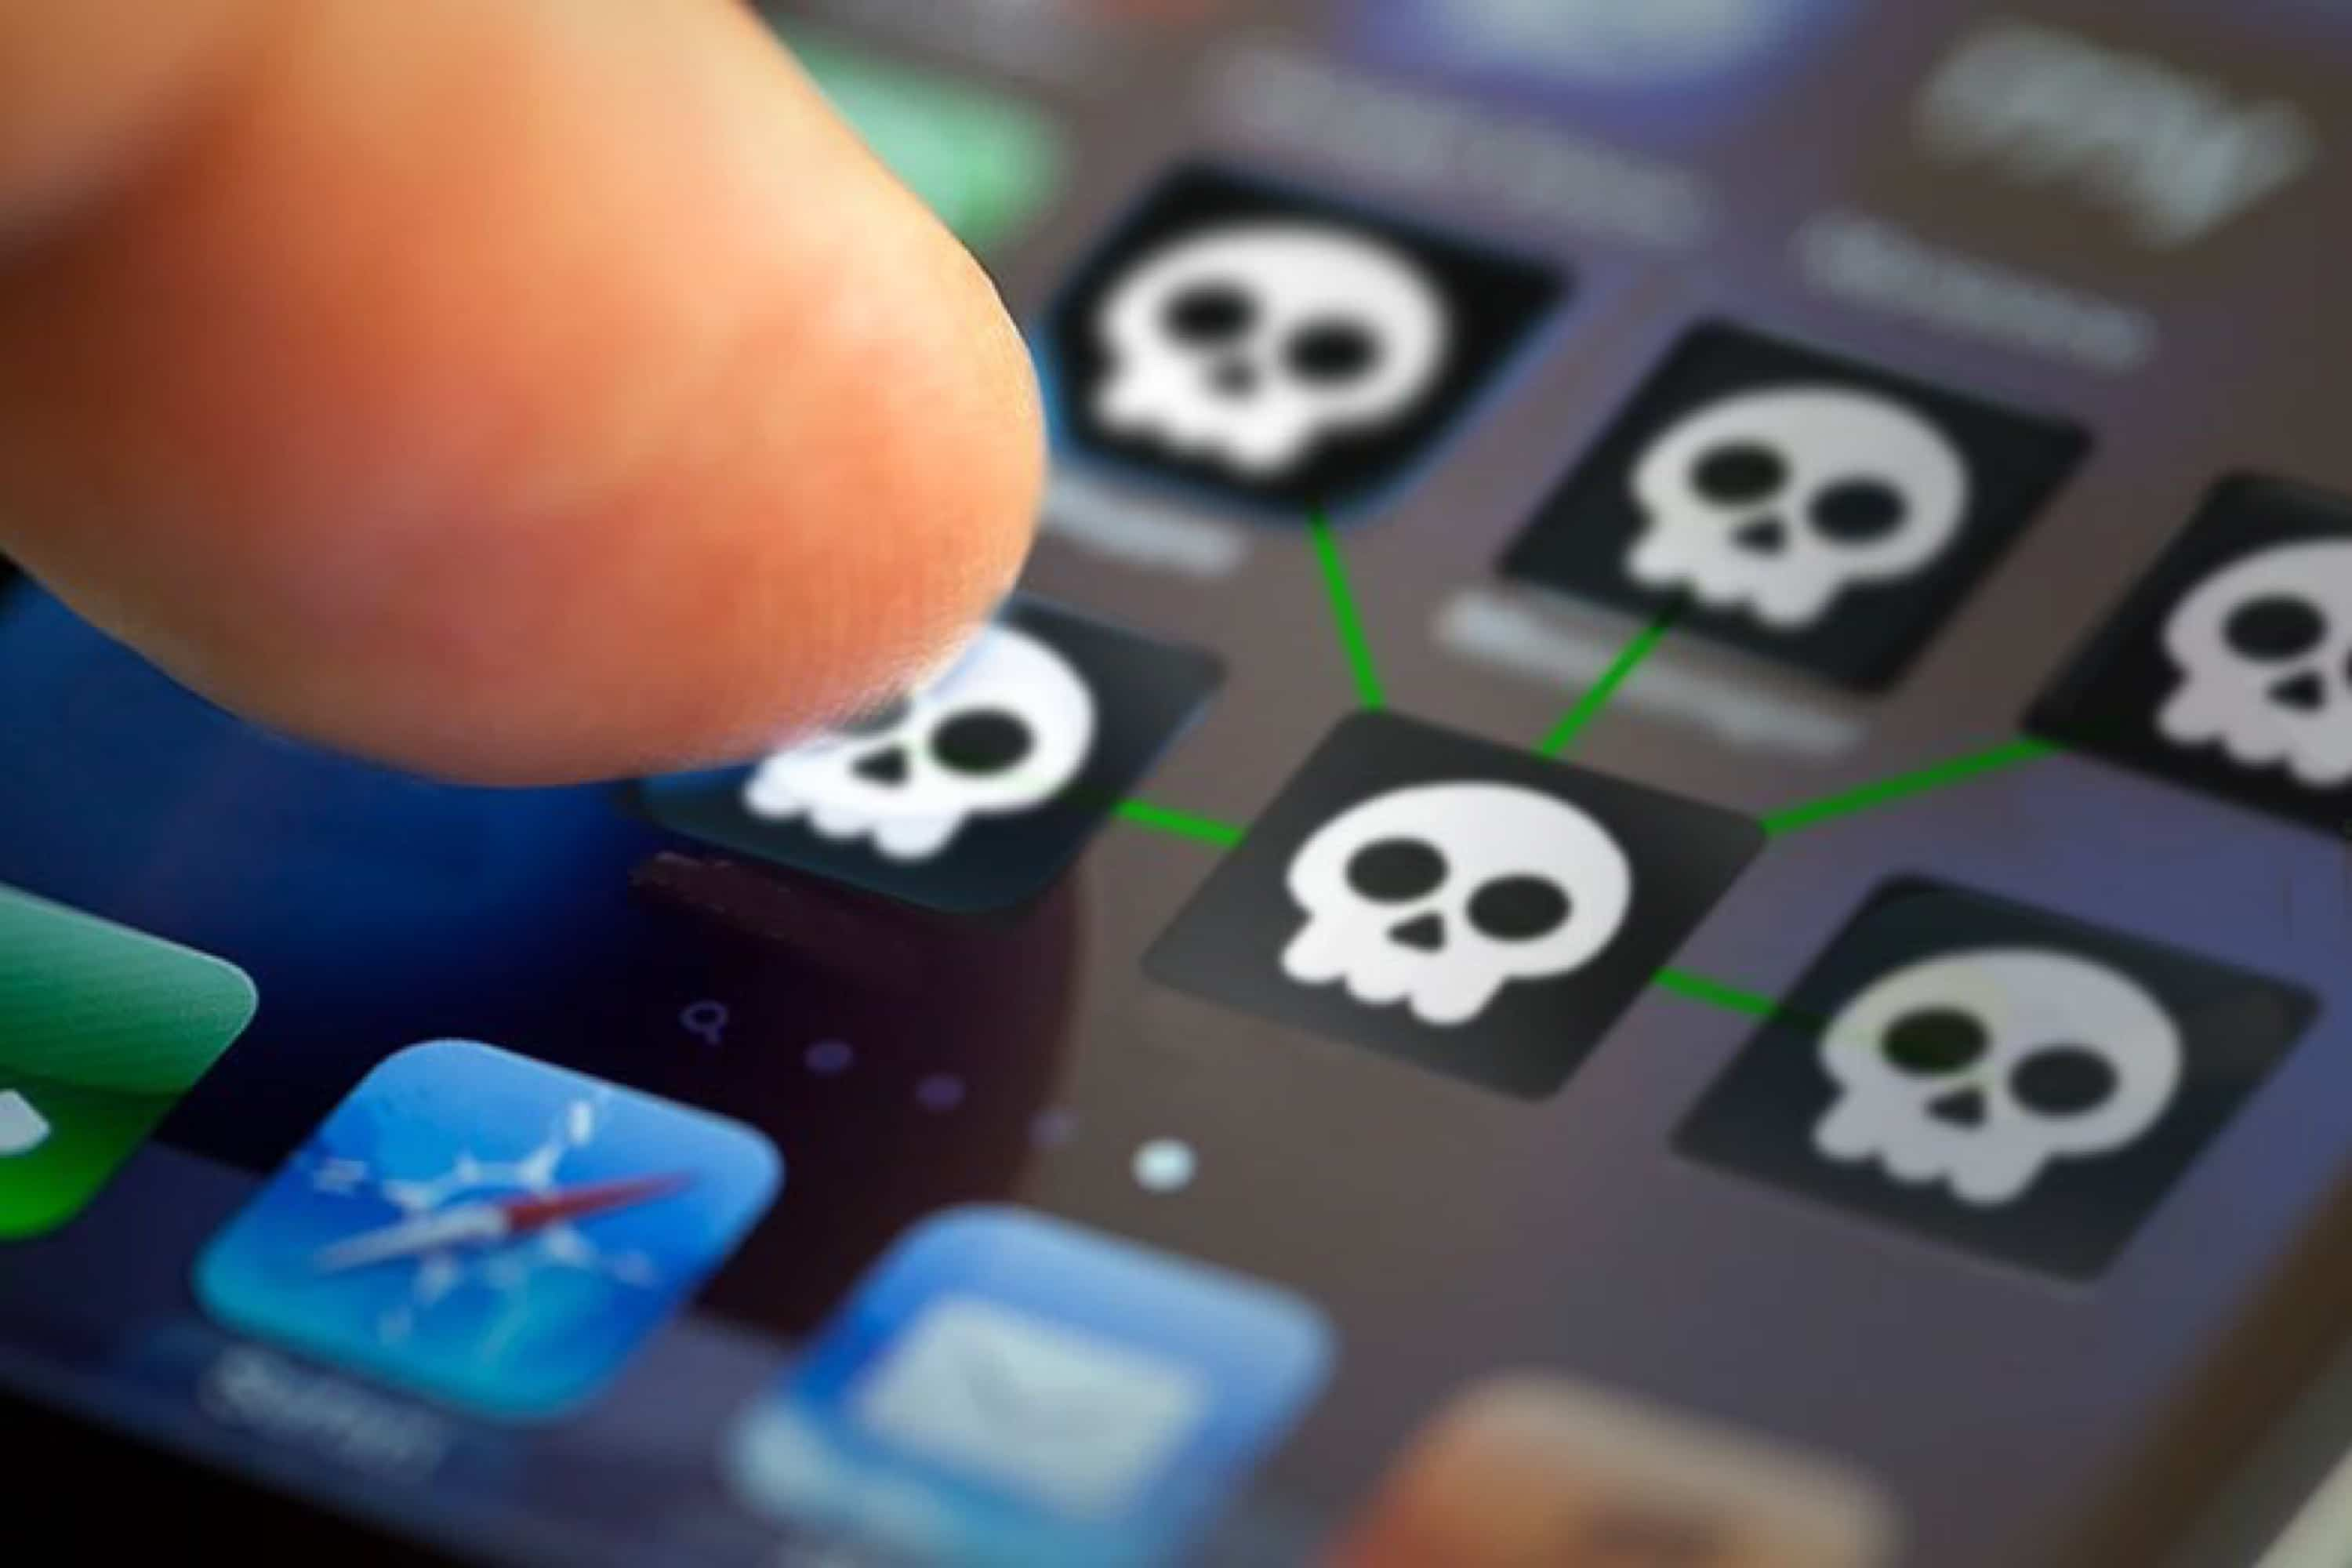 cydia-app-store-sues-apple-for-illegal-distribution-monopoly-20201210-2